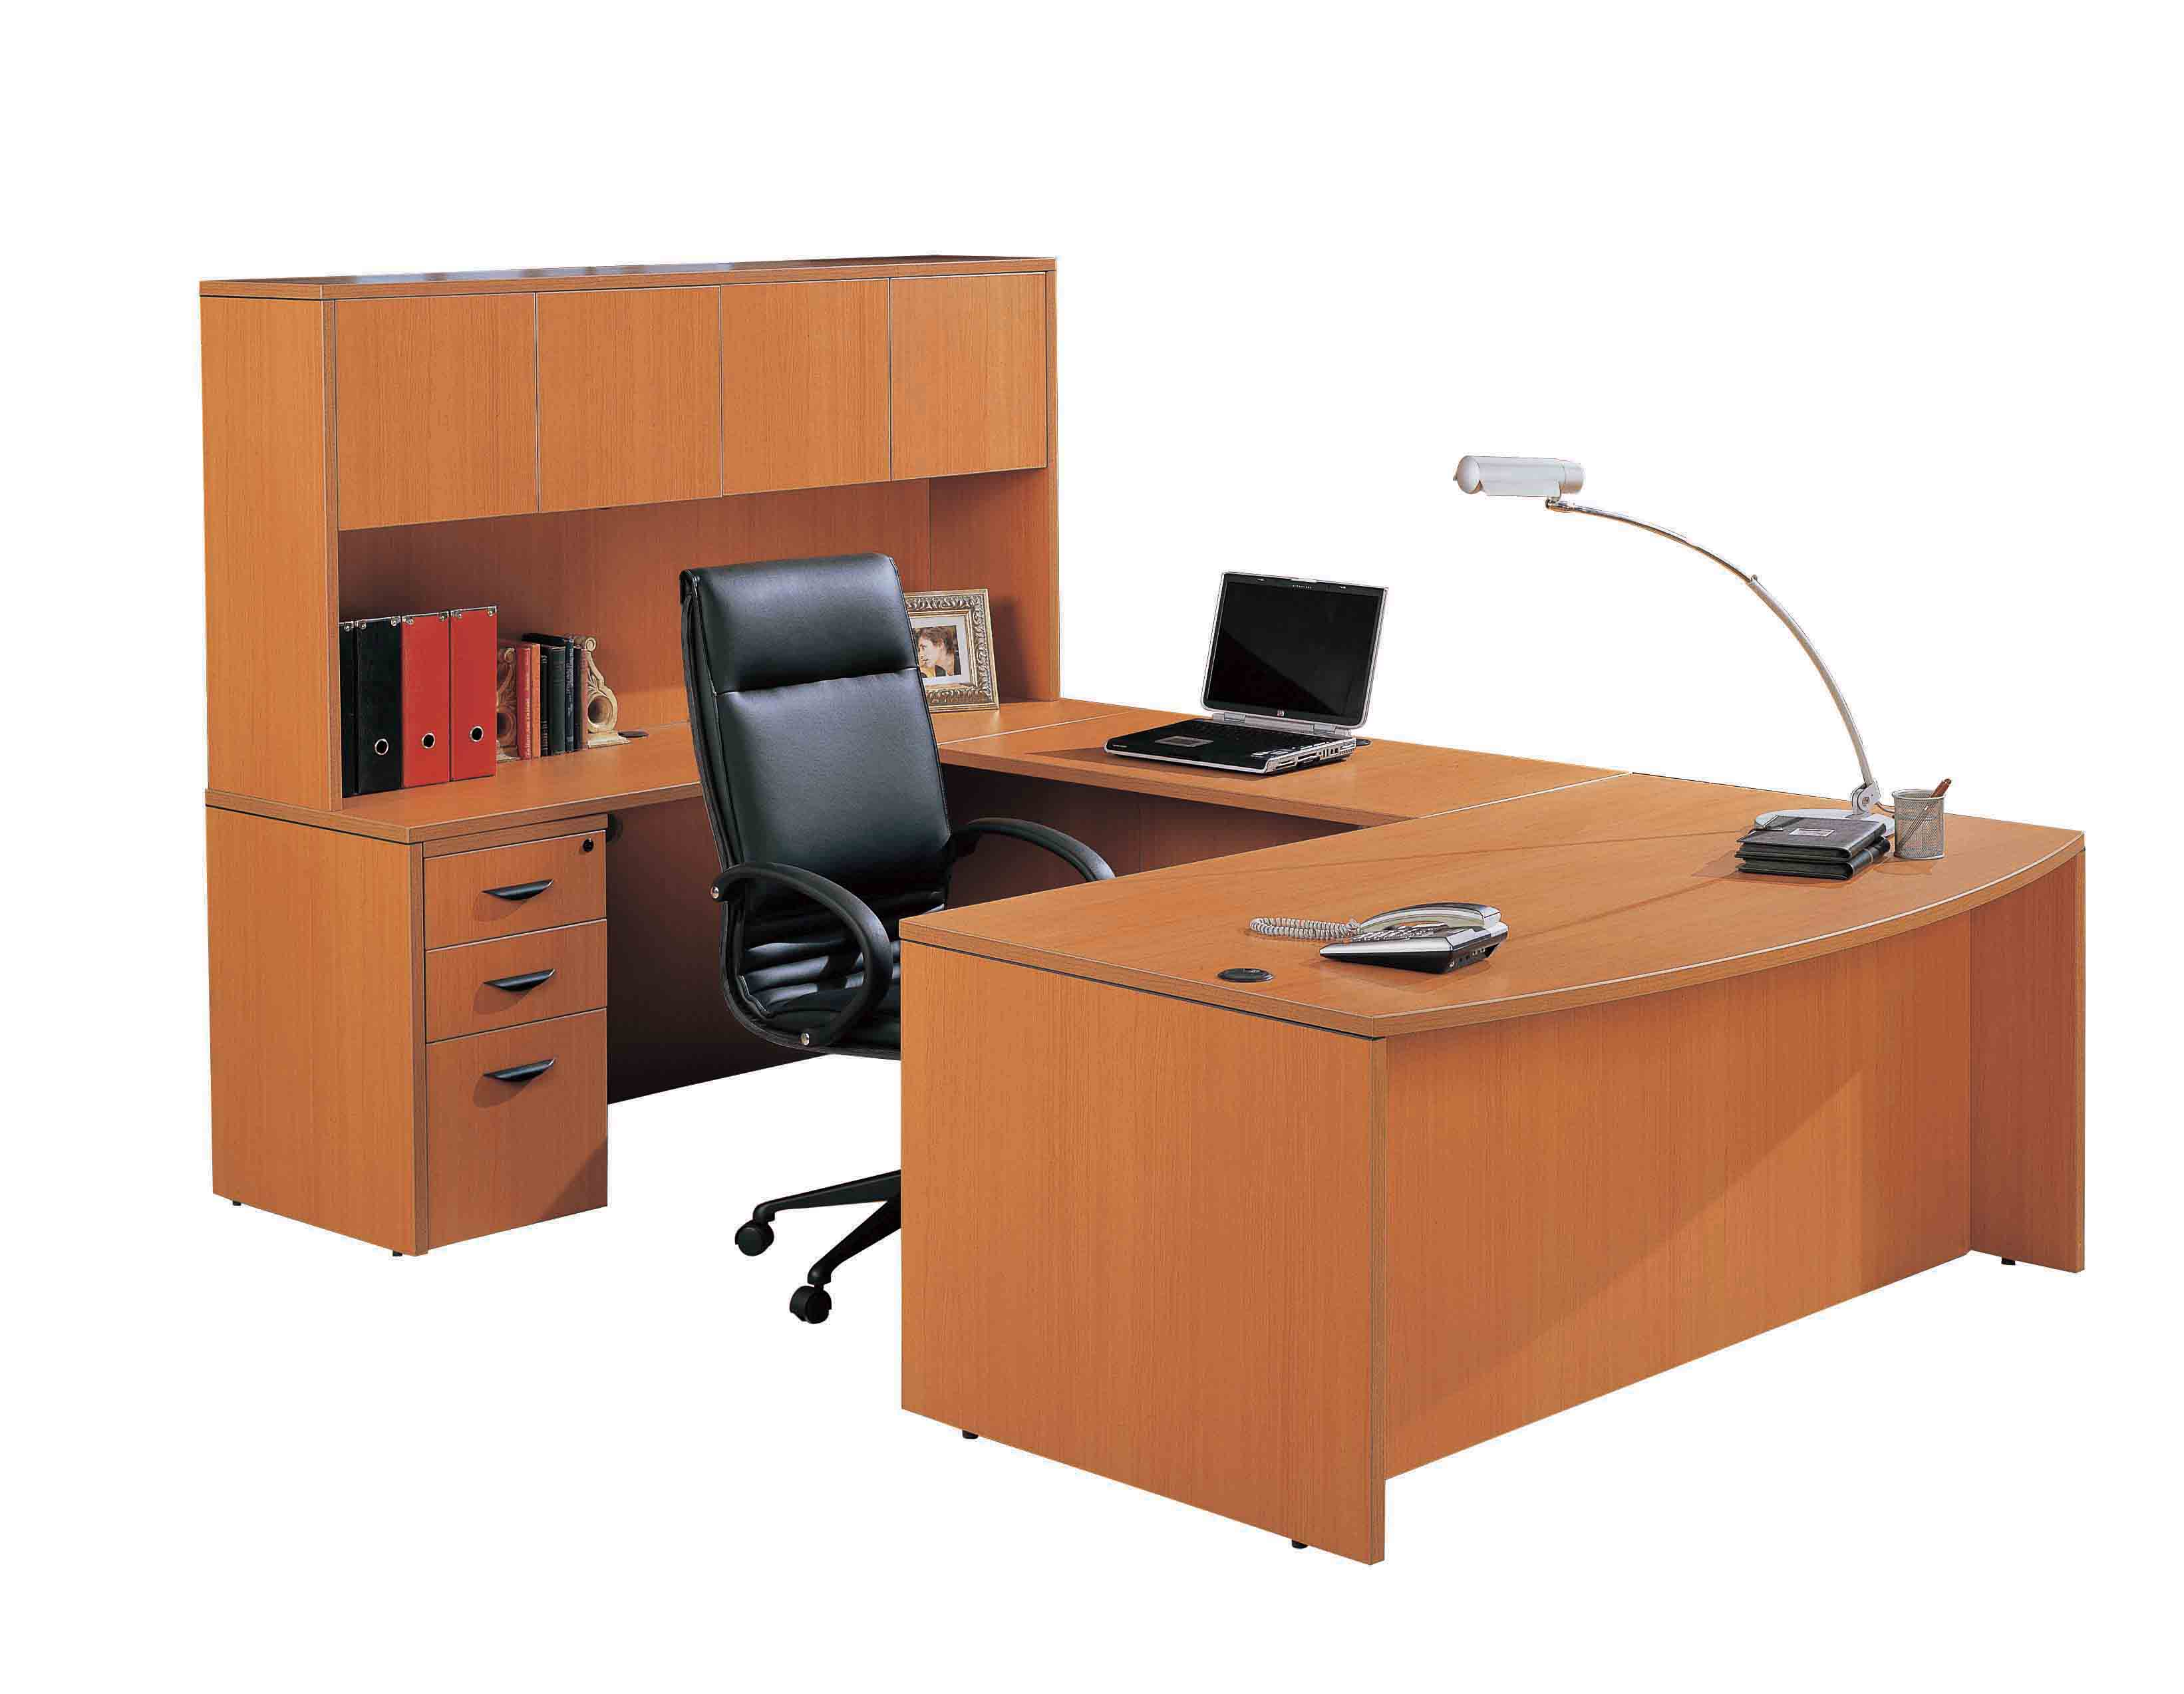 Laminte Office Furniture U-shaped Desk With Hutch/high Quality Melamine  Office Desk - Buy Office Furniture,Office Desk,Office Desk With Hutch  Product ...